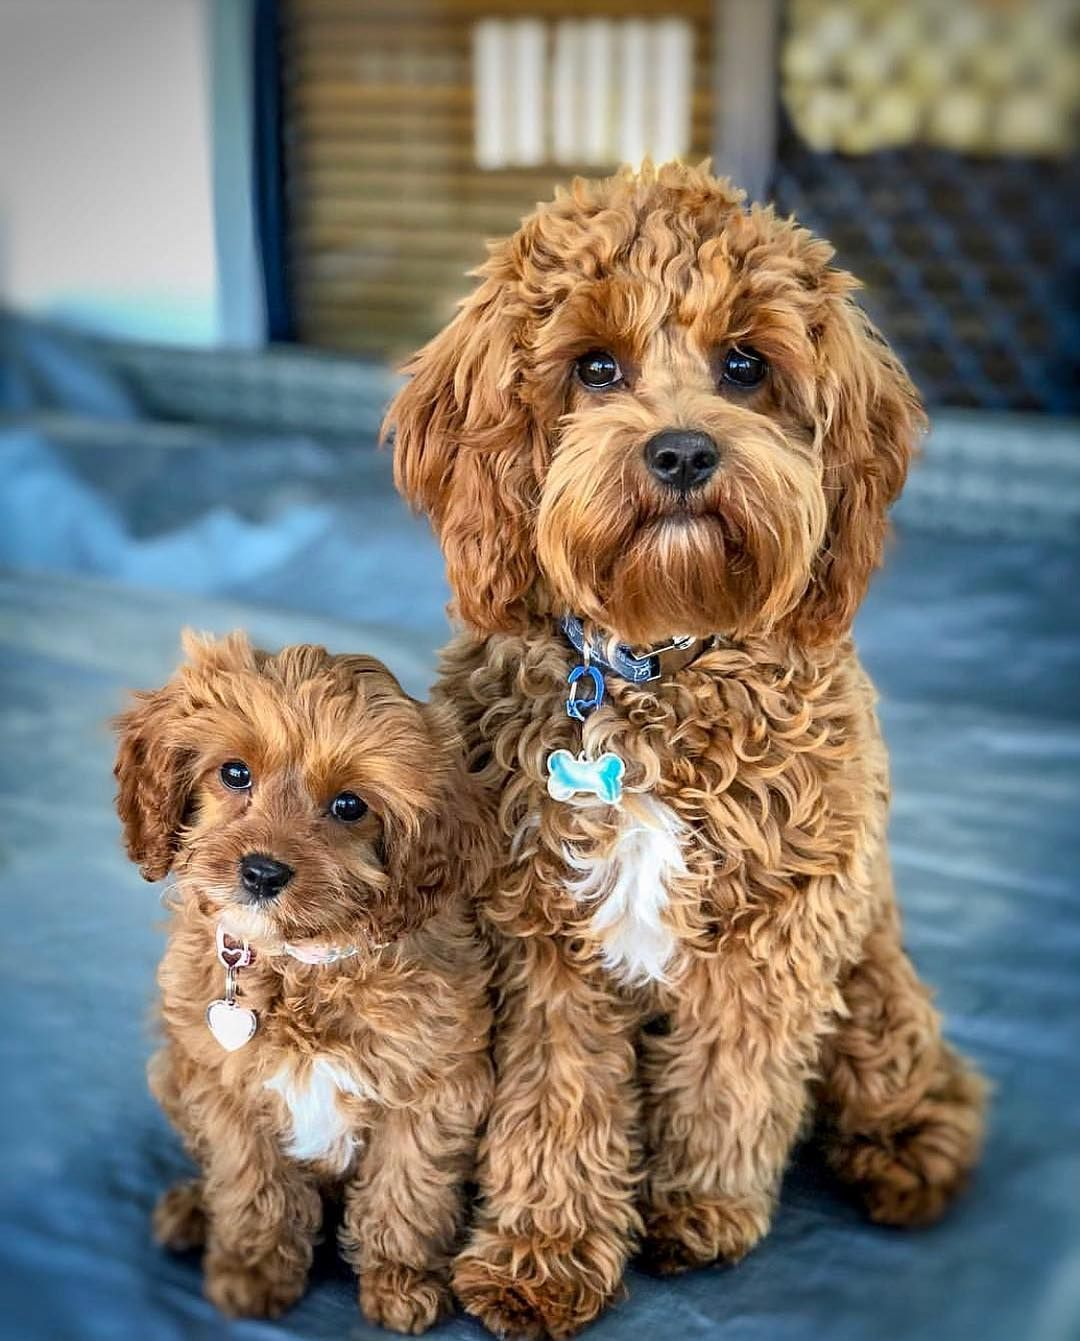 Cavapoo Puppies Are Very Expressive And Social That Makes Them Very Friendly And A Perfect Pet Allergies Season In 2020 Cavapoo Puppies Puppies Cute Dogs And Puppies